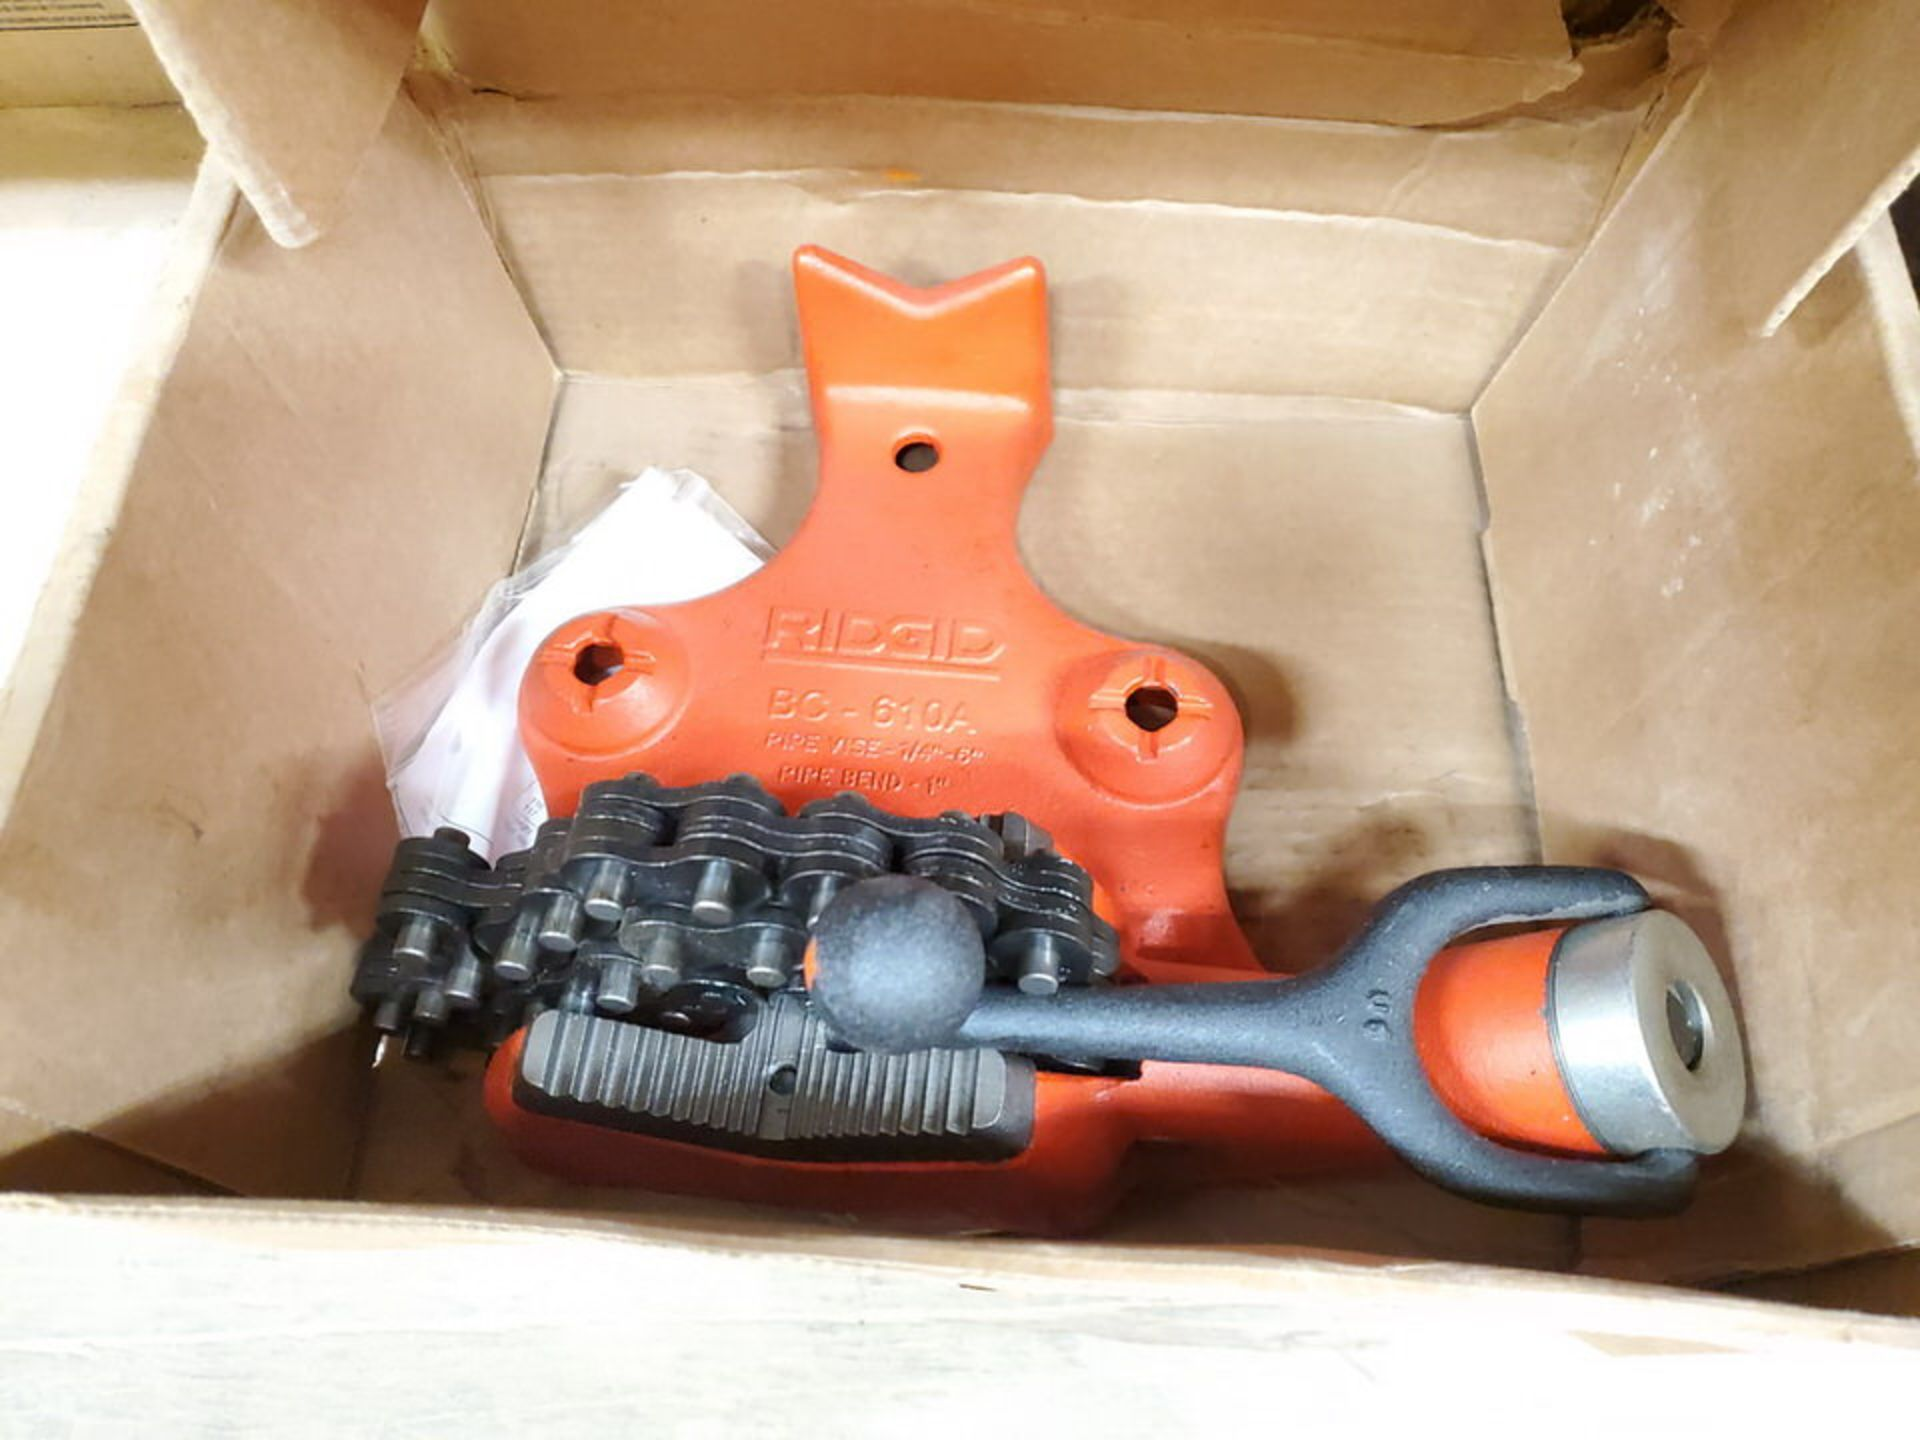 """Ridgid BC-610A (2) 1/4""""- 6"""" Pipe Vises 1"""" Pipe Bend - Image 2 of 5"""